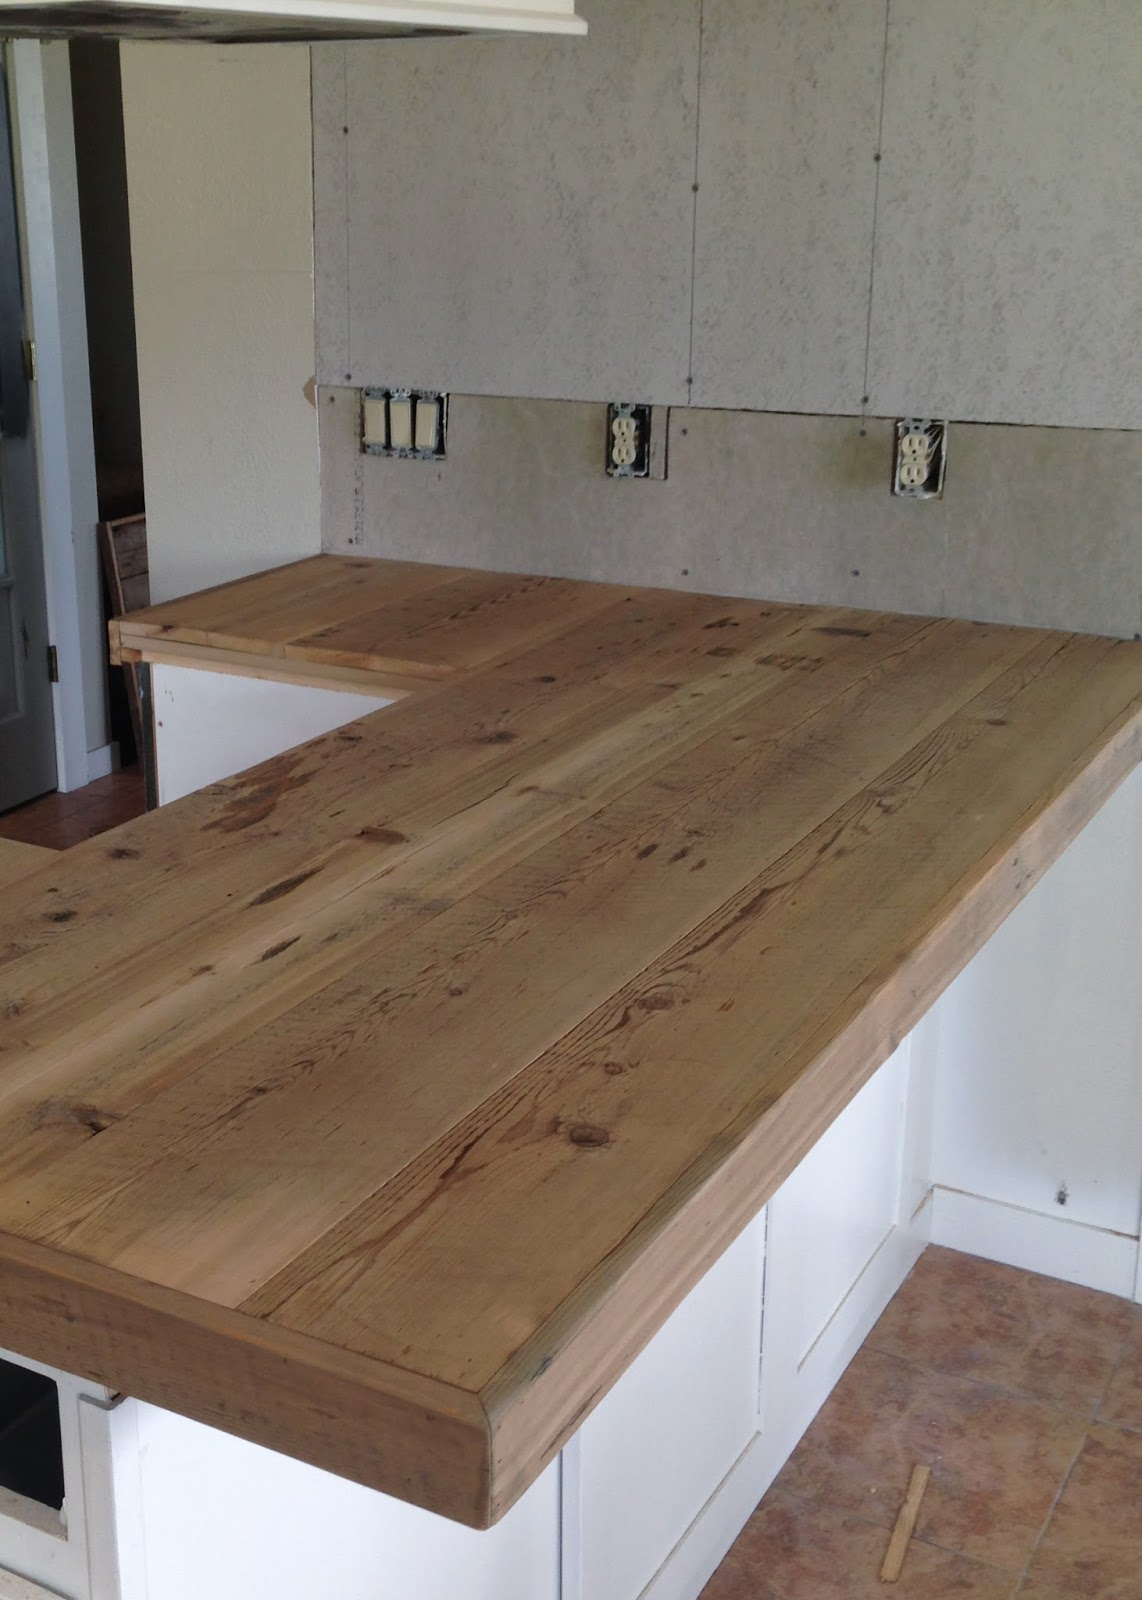 Diy reclaimed wood countertop averie lane diy reclaimed wood diy reclaimed wood countertop adding trim boards along edge solutioingenieria Images